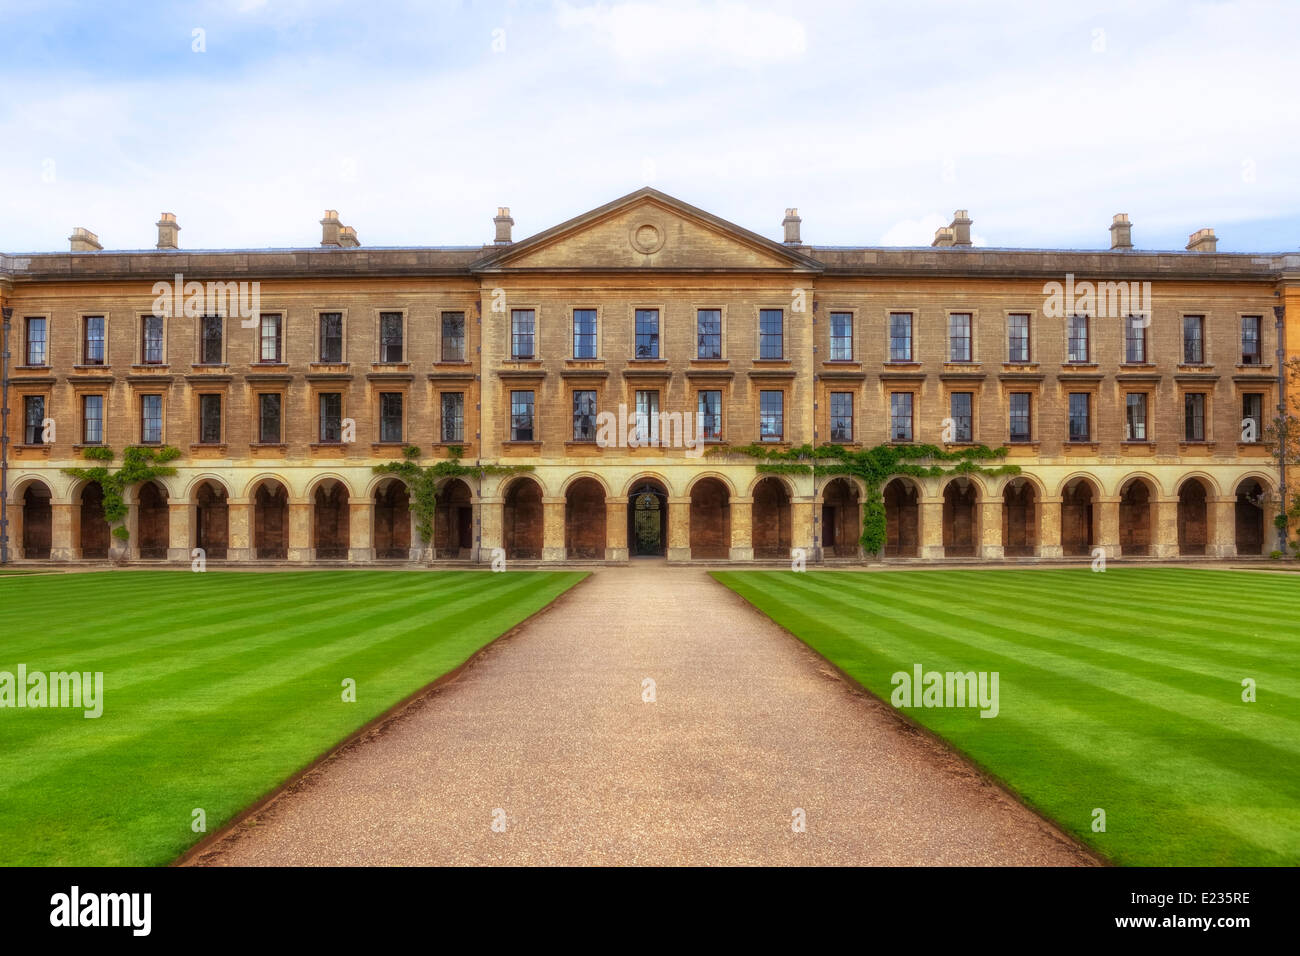 Magdalen College, Oxford, Oxfordshire, Angleterre, Royaume-Uni Photo Stock